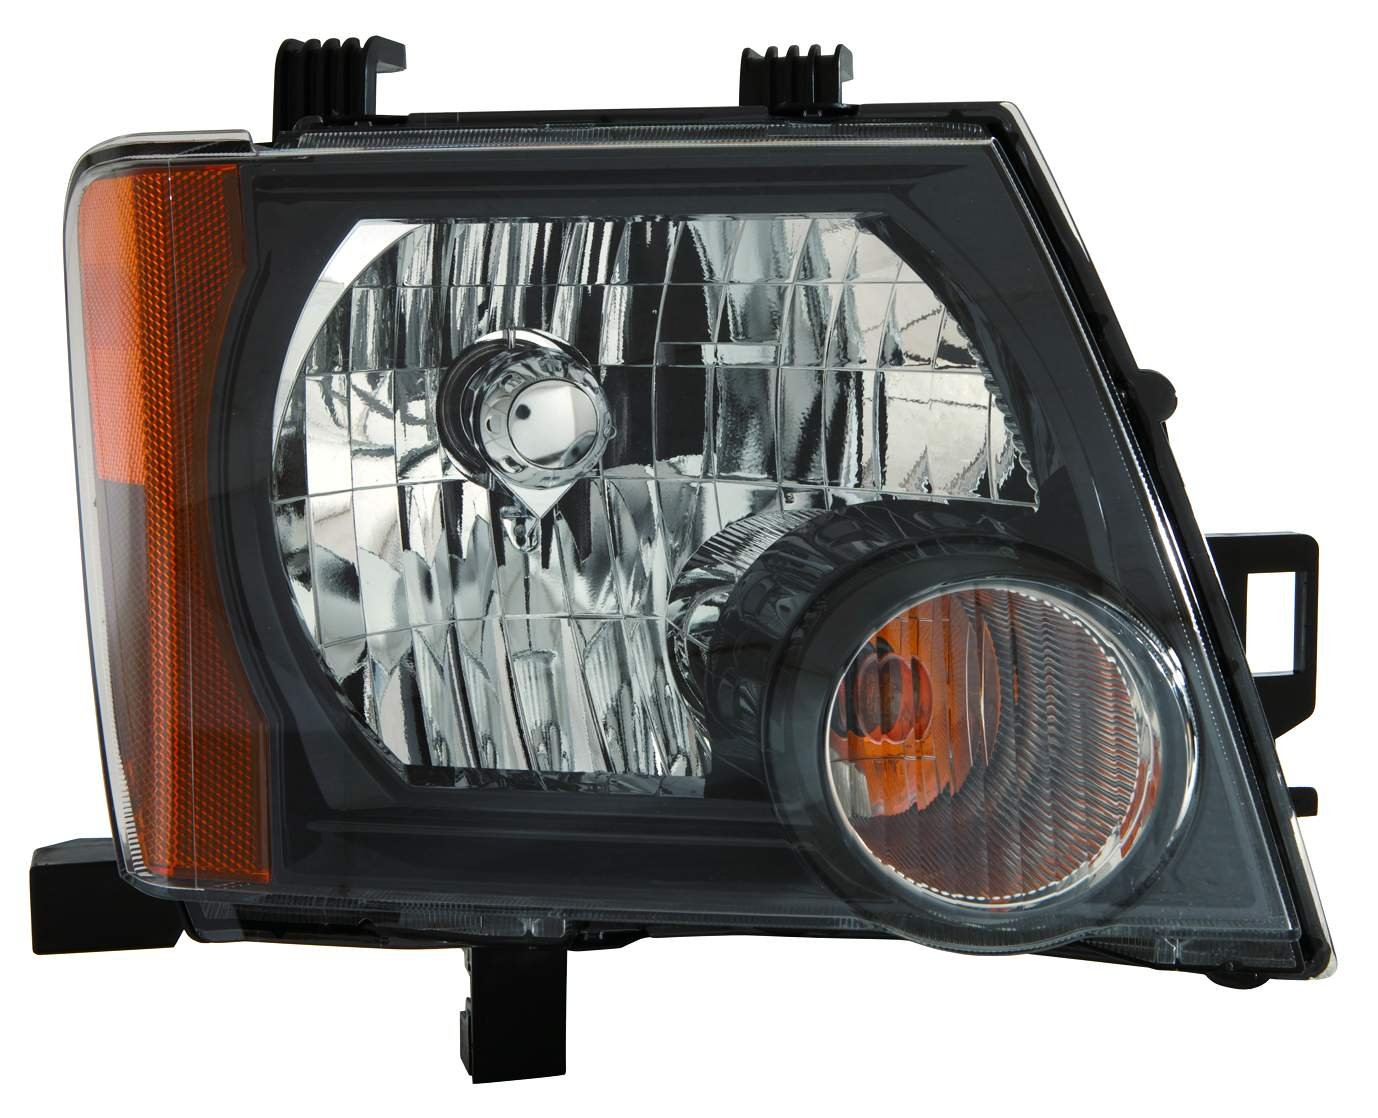 Depo 315-1160R-AS2 Nissan Xterra Passenger Side Replacement Headlight Assembly 02-00-315-1160R-AS2